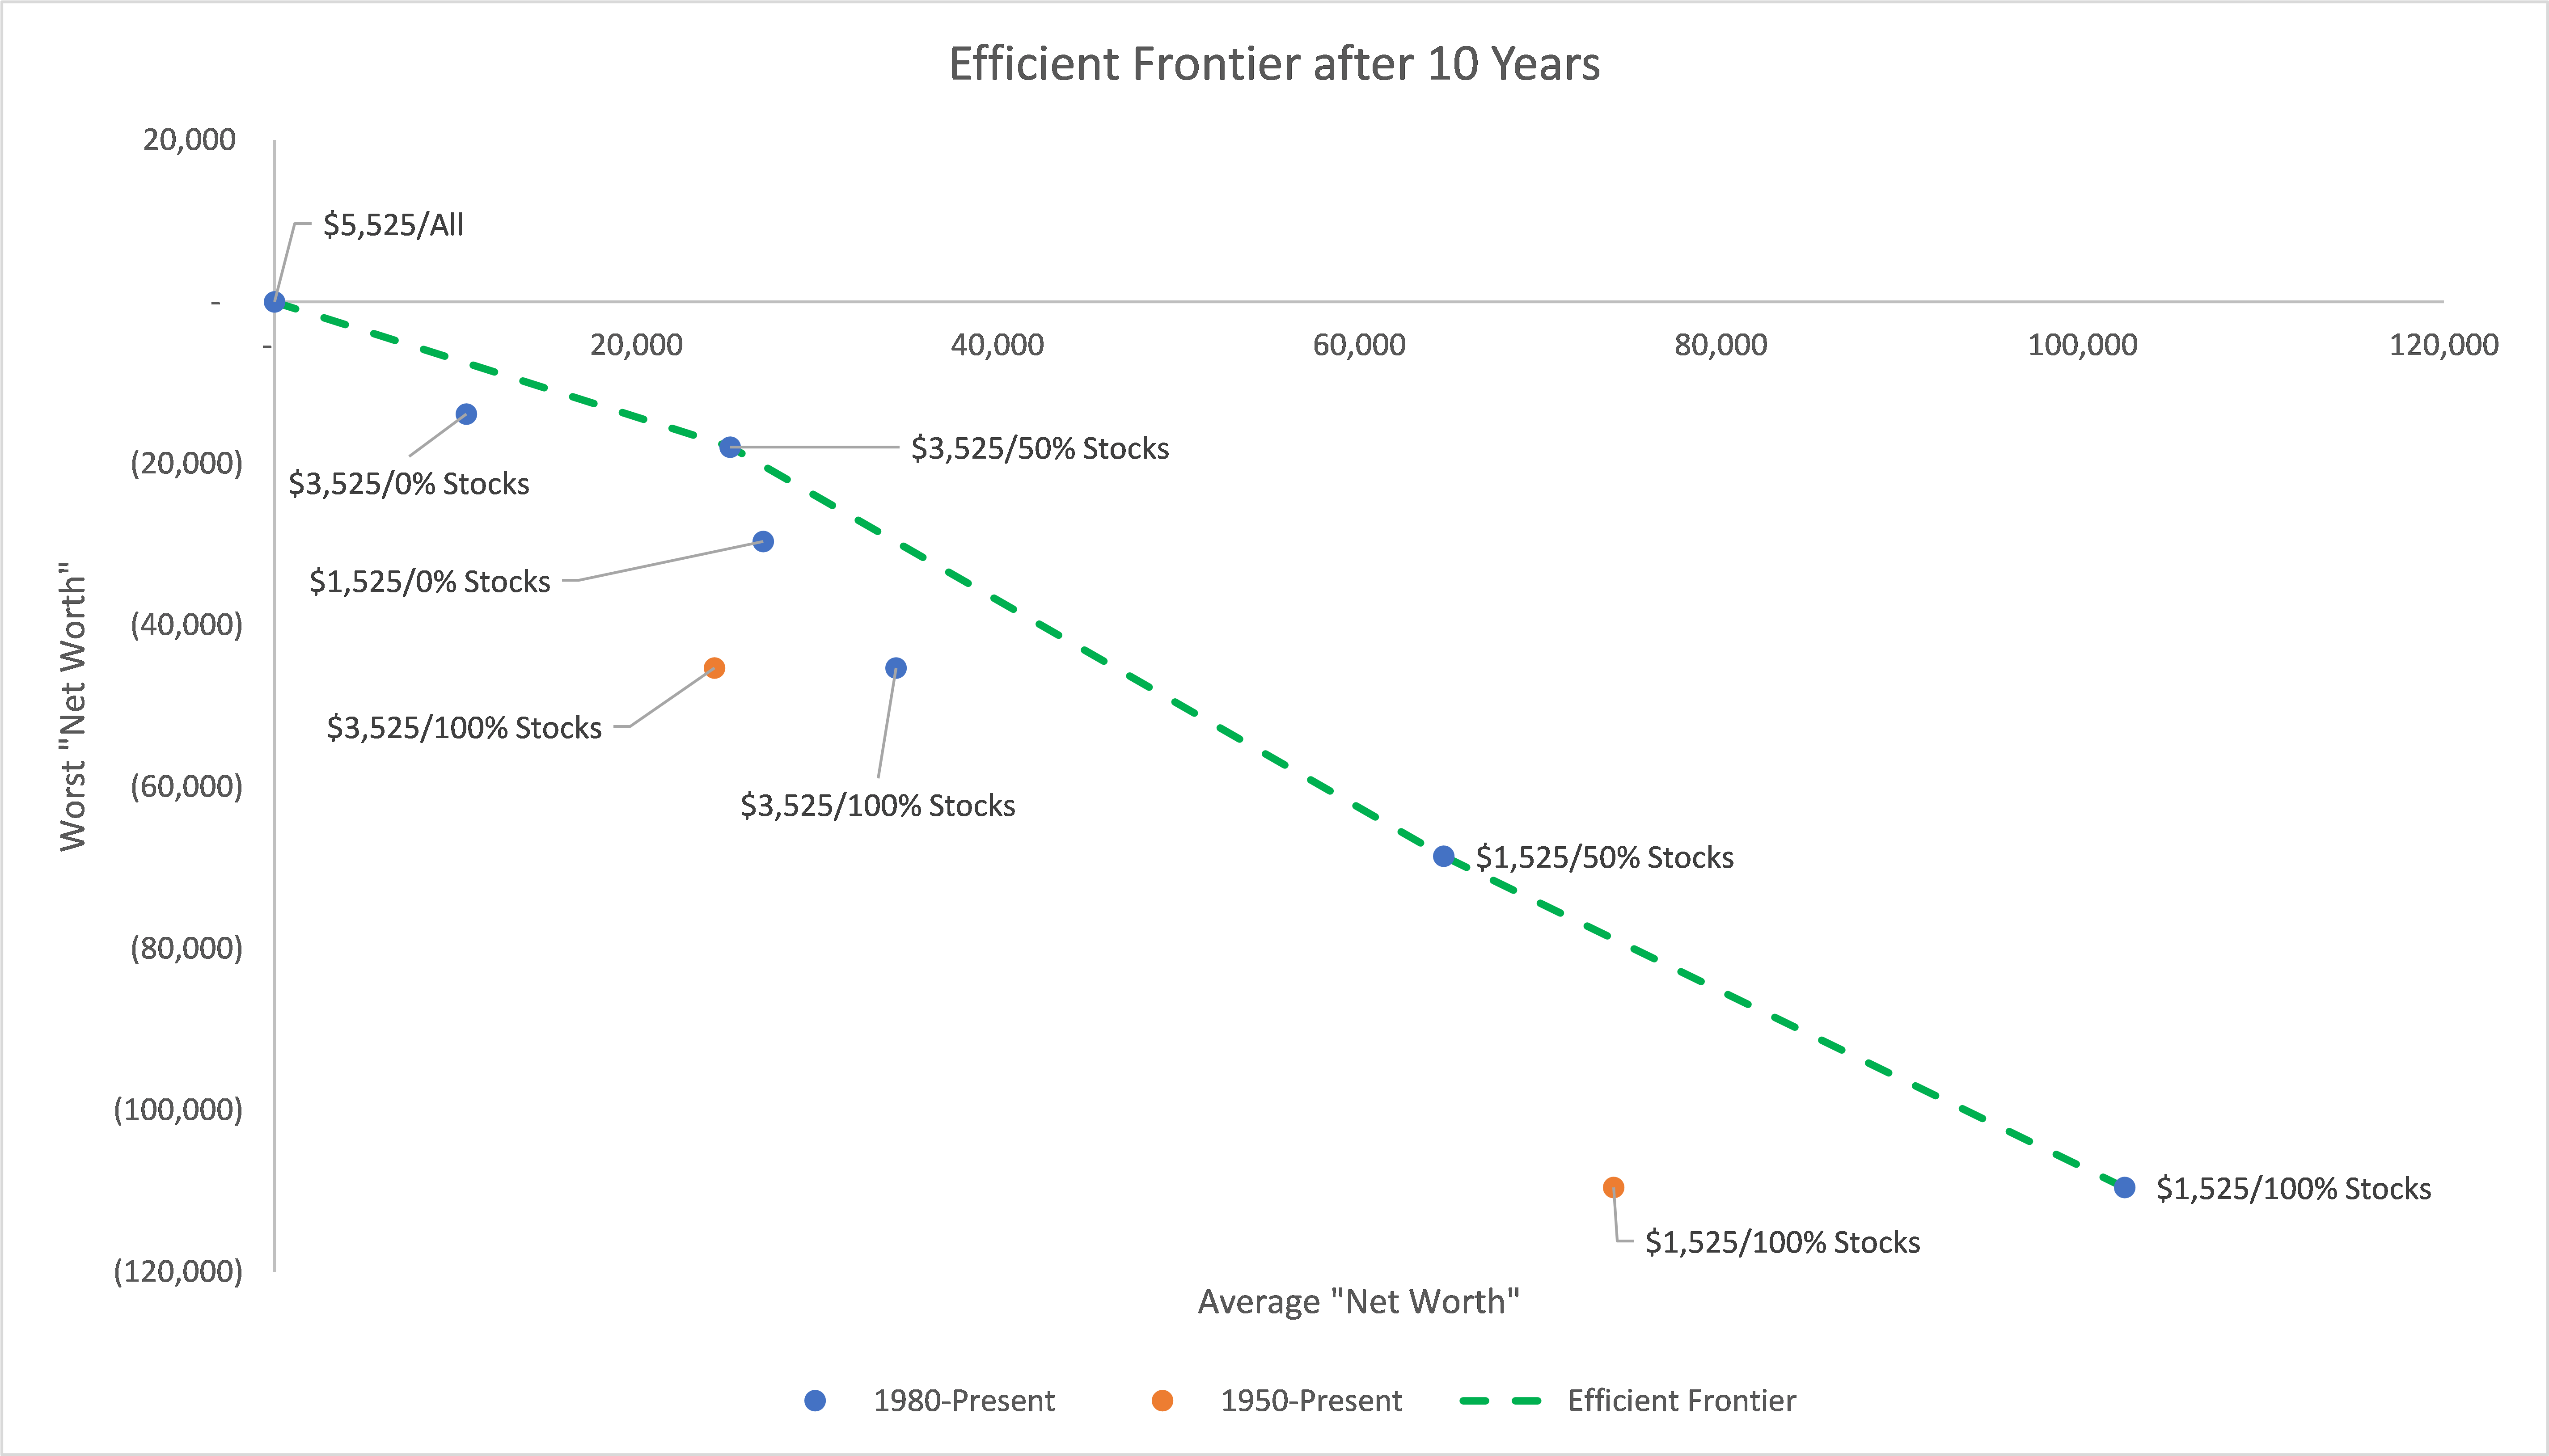 Efficient Frontier after 10 Years